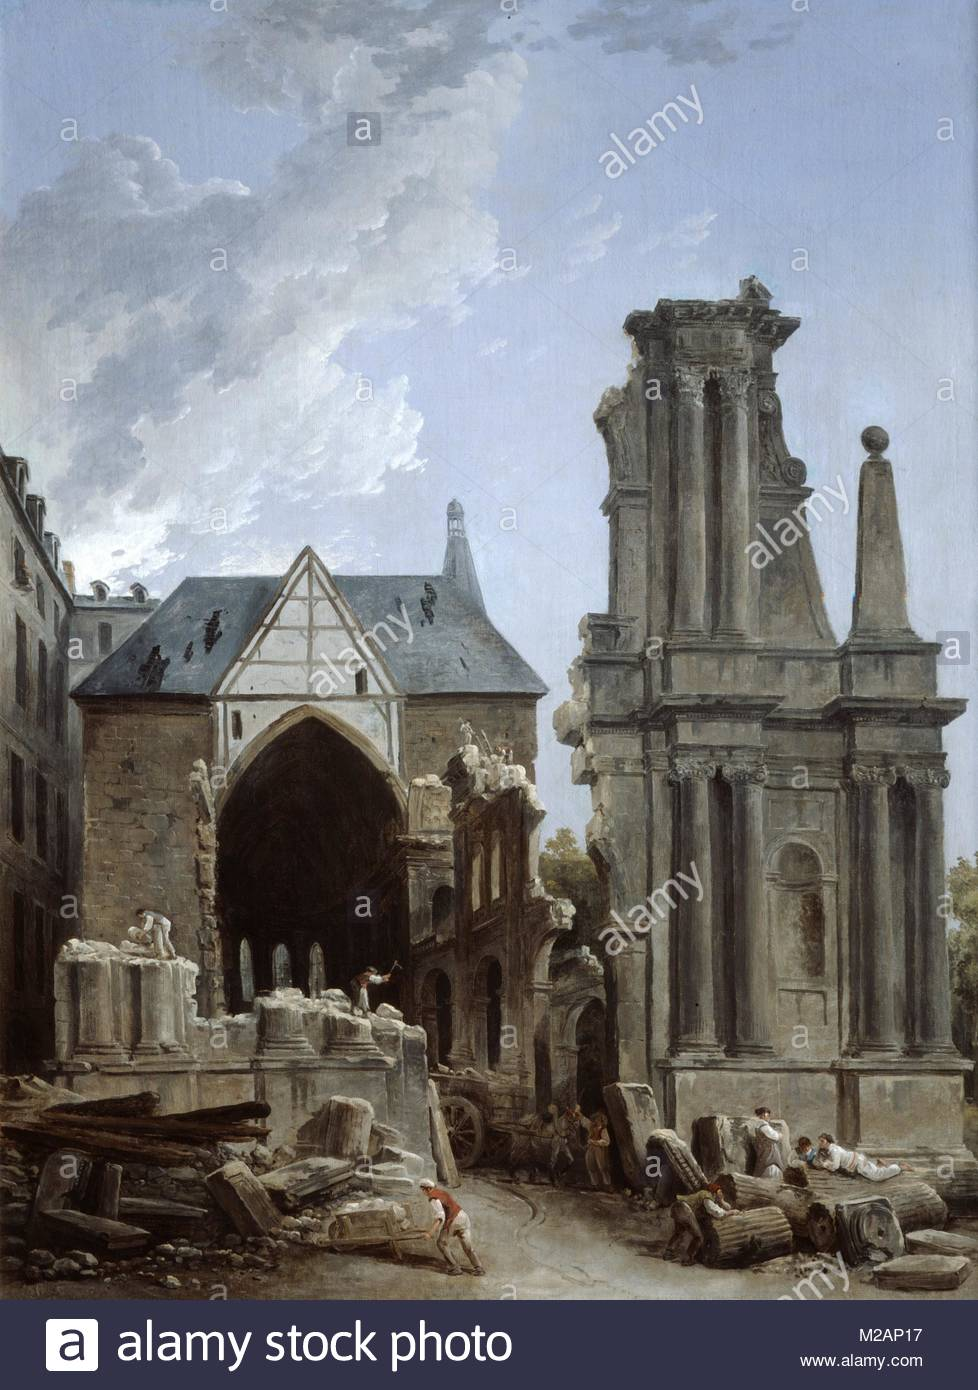 The Demolition of the Church of the Feuillants - Stock Image